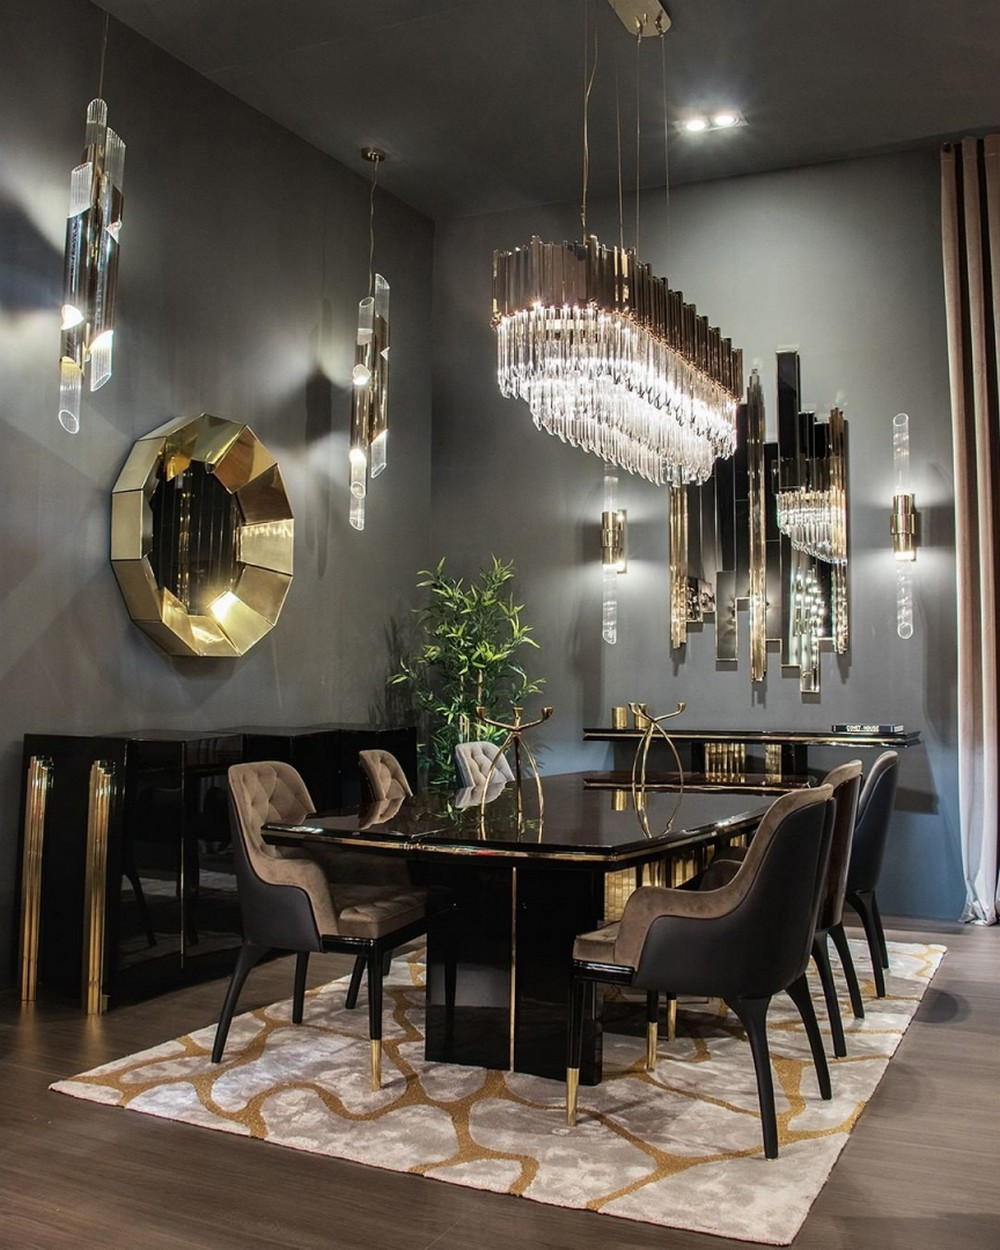 Improve Your Dining Room With These Amazing Ideas dining room Improve Your Dining Room With These Amazing Ideas 1 7